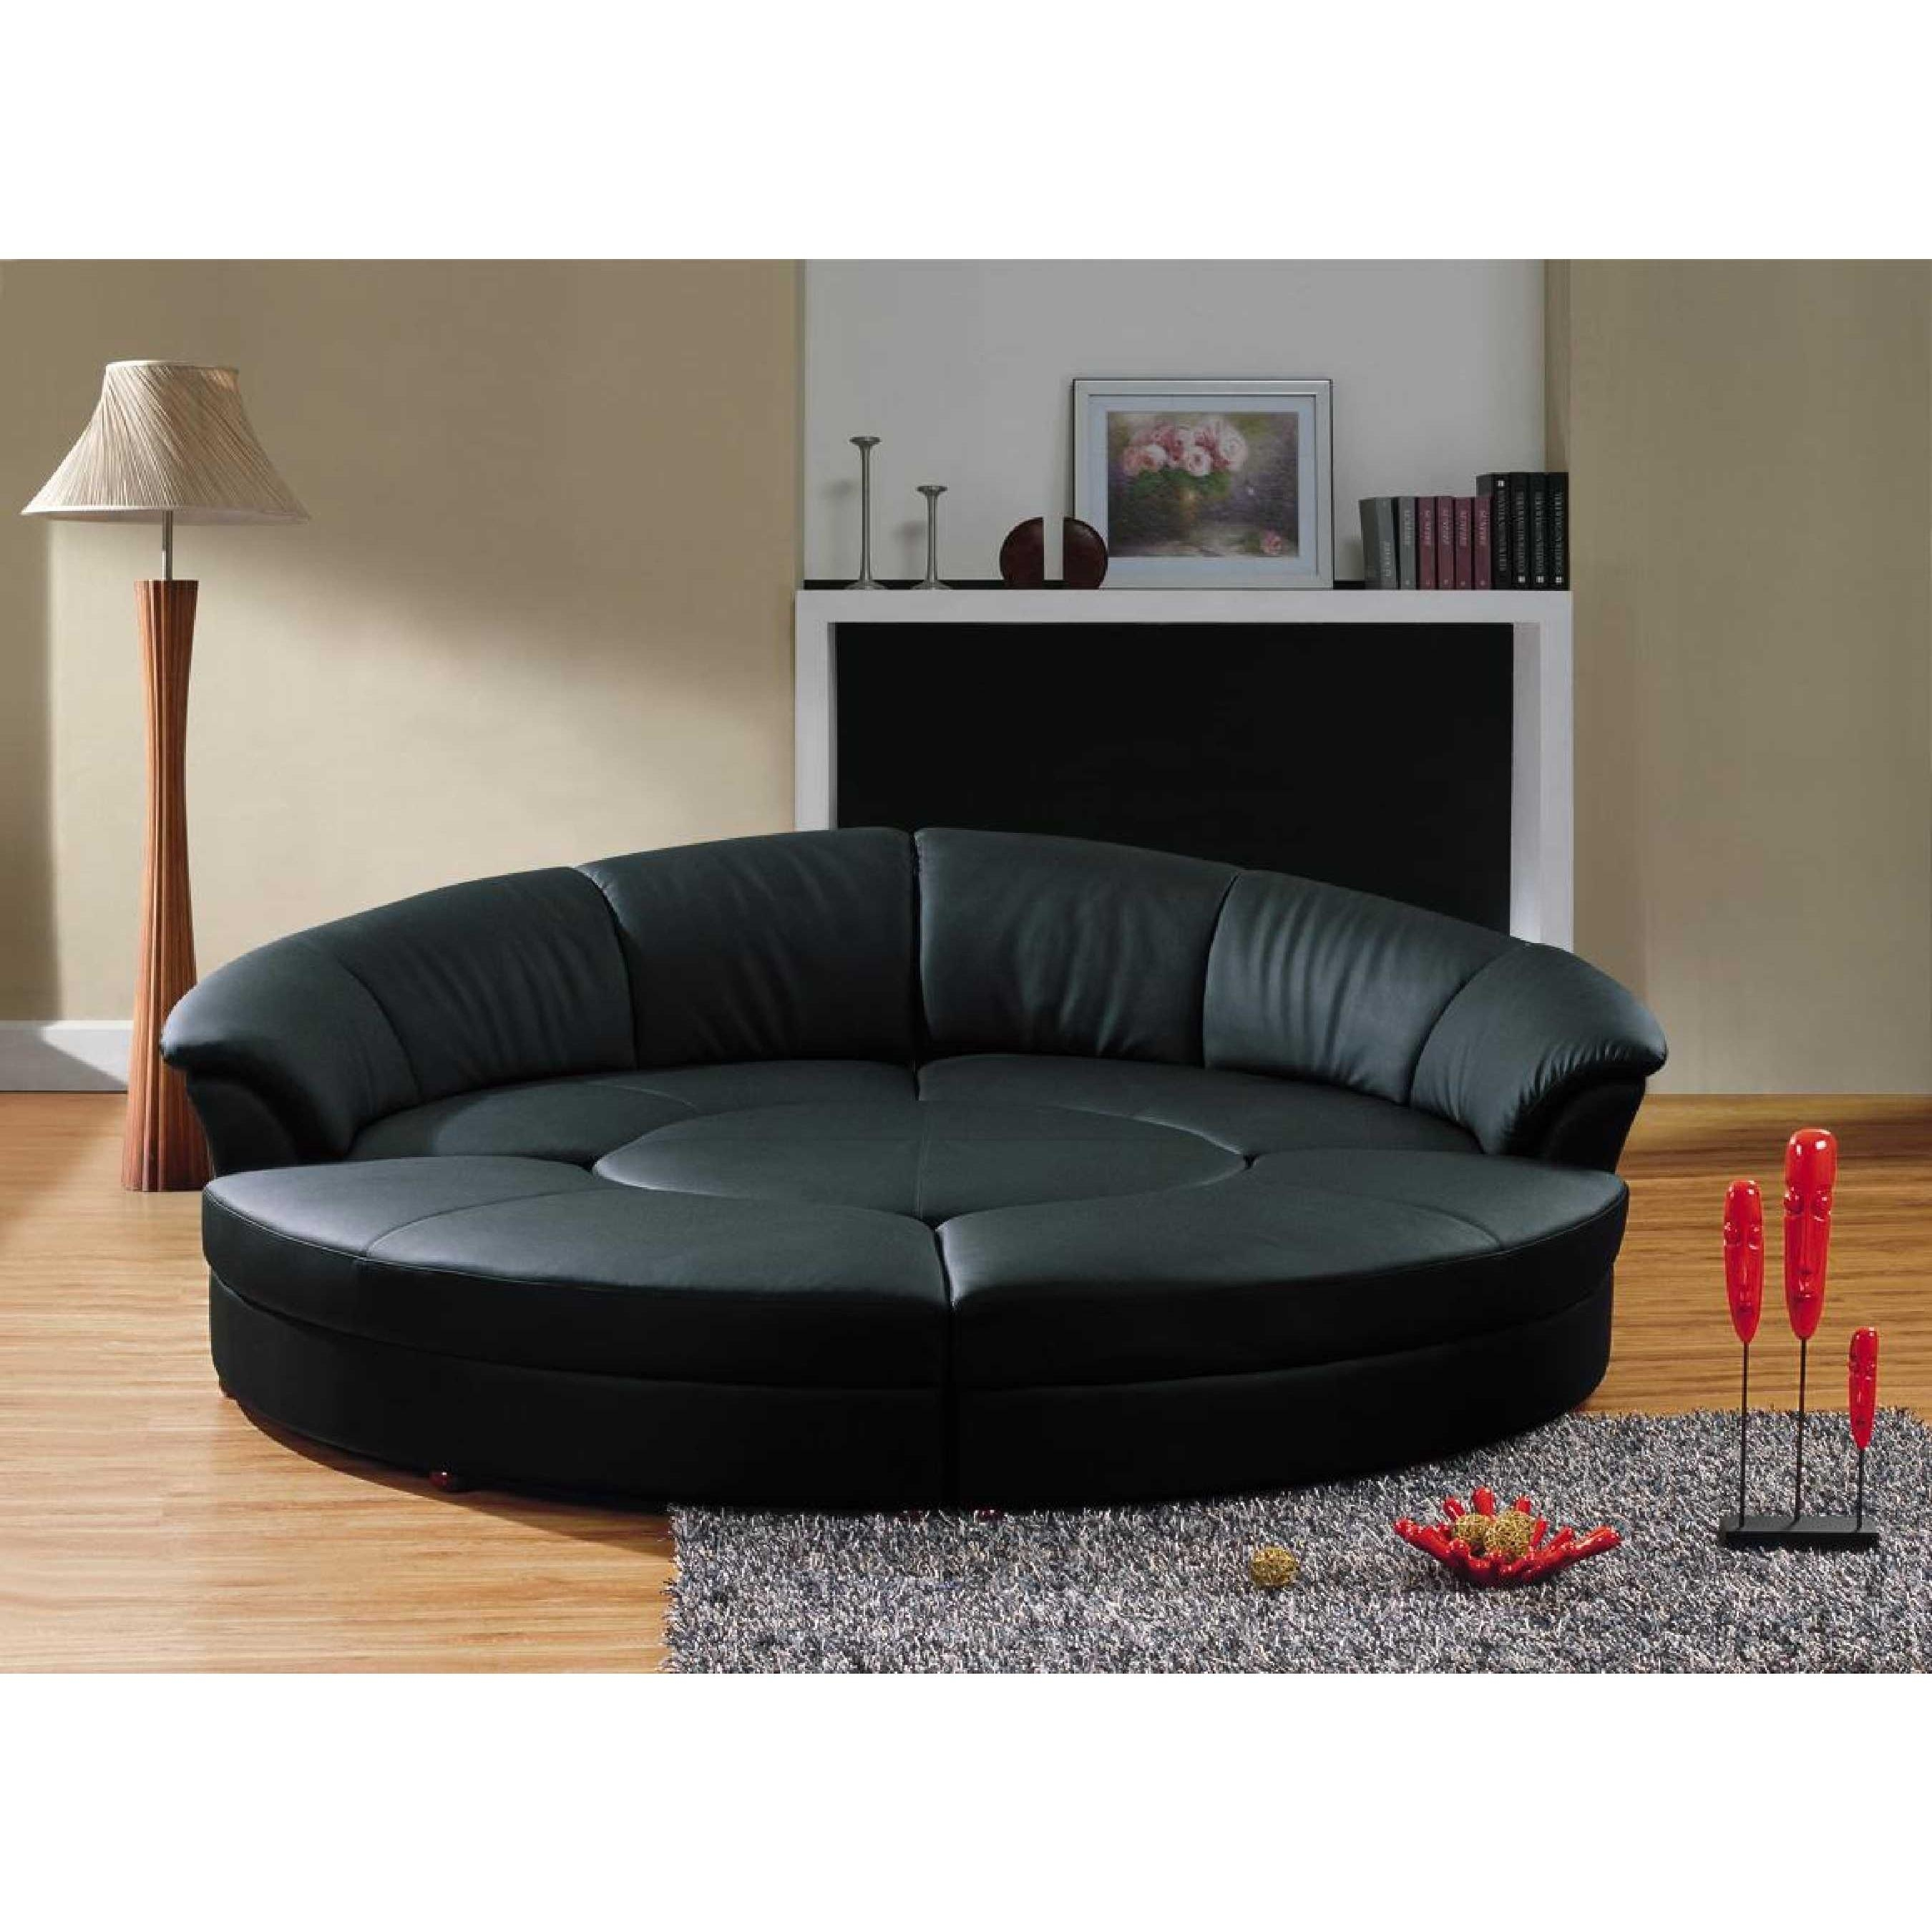 Sofas Center : Leather Futon Sofa Fascinating Photos Inspirations Regarding Leather Fouton Sofas (Image 20 of 20)